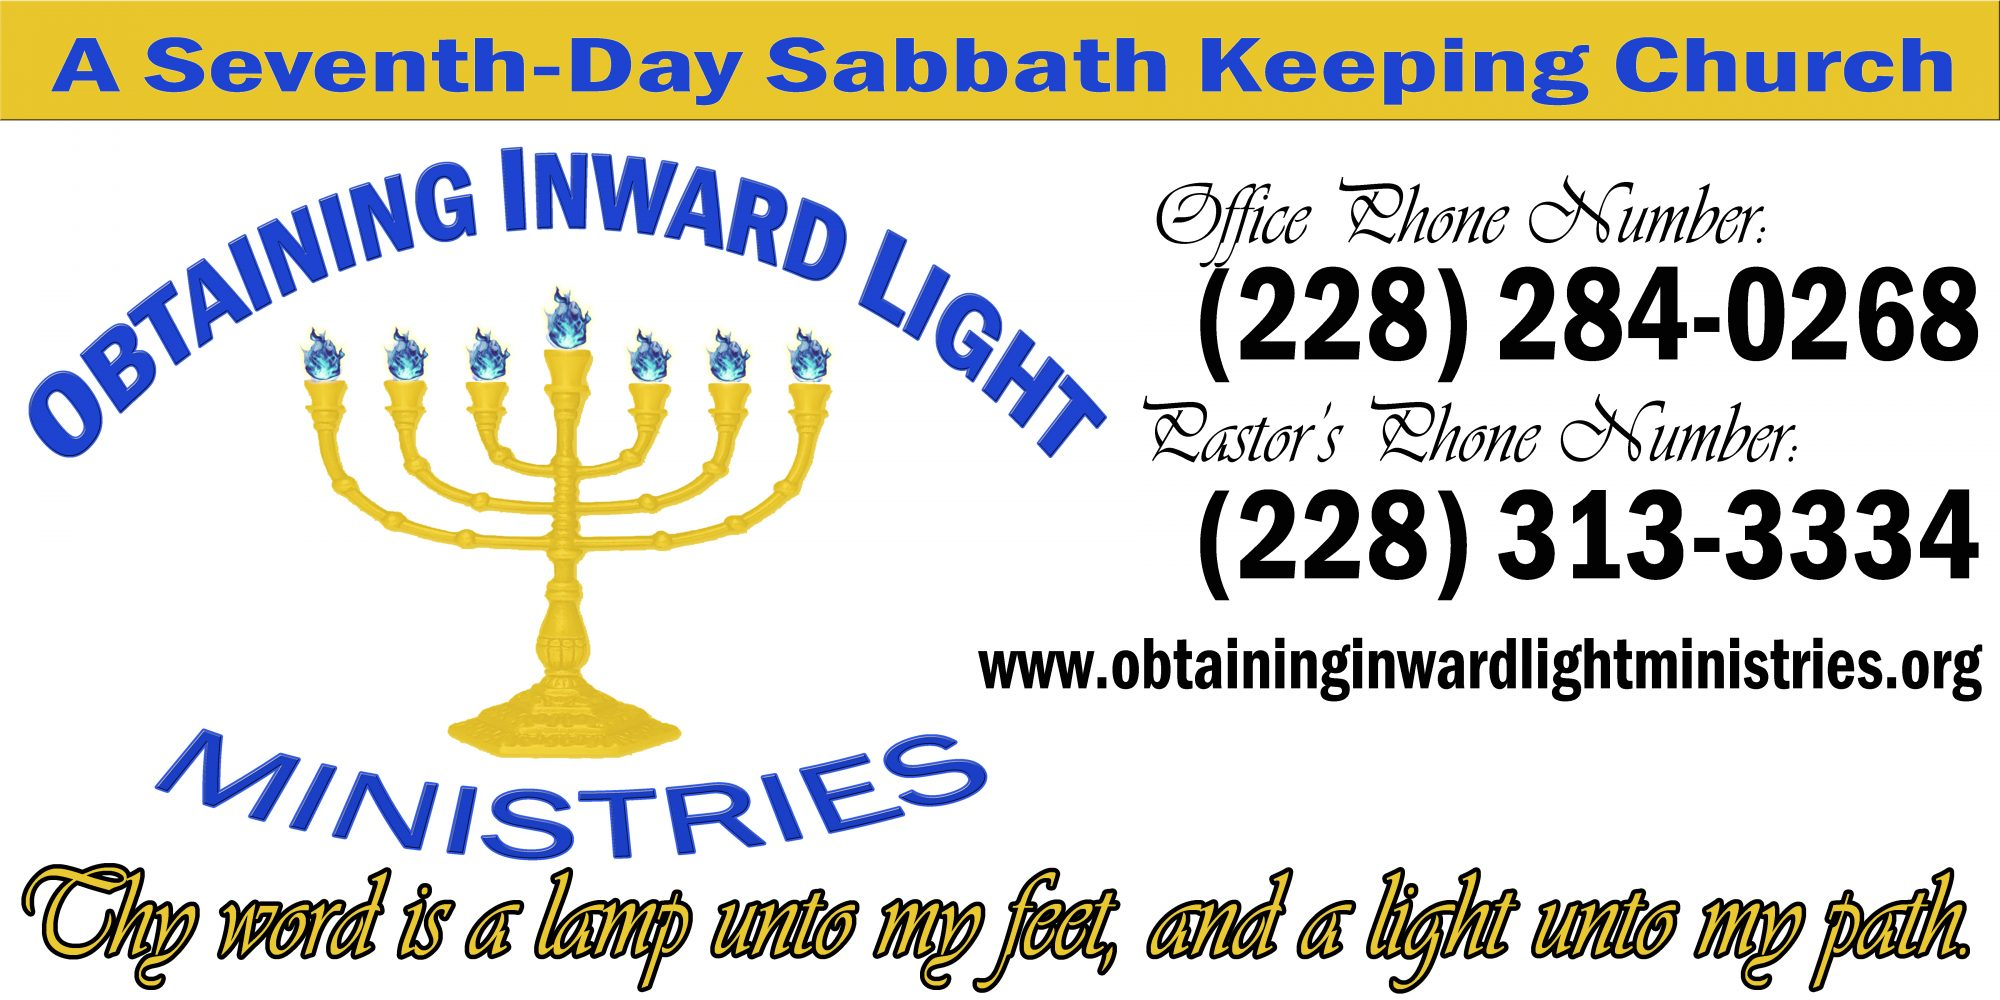 www.obtaininginwardlightministries.org